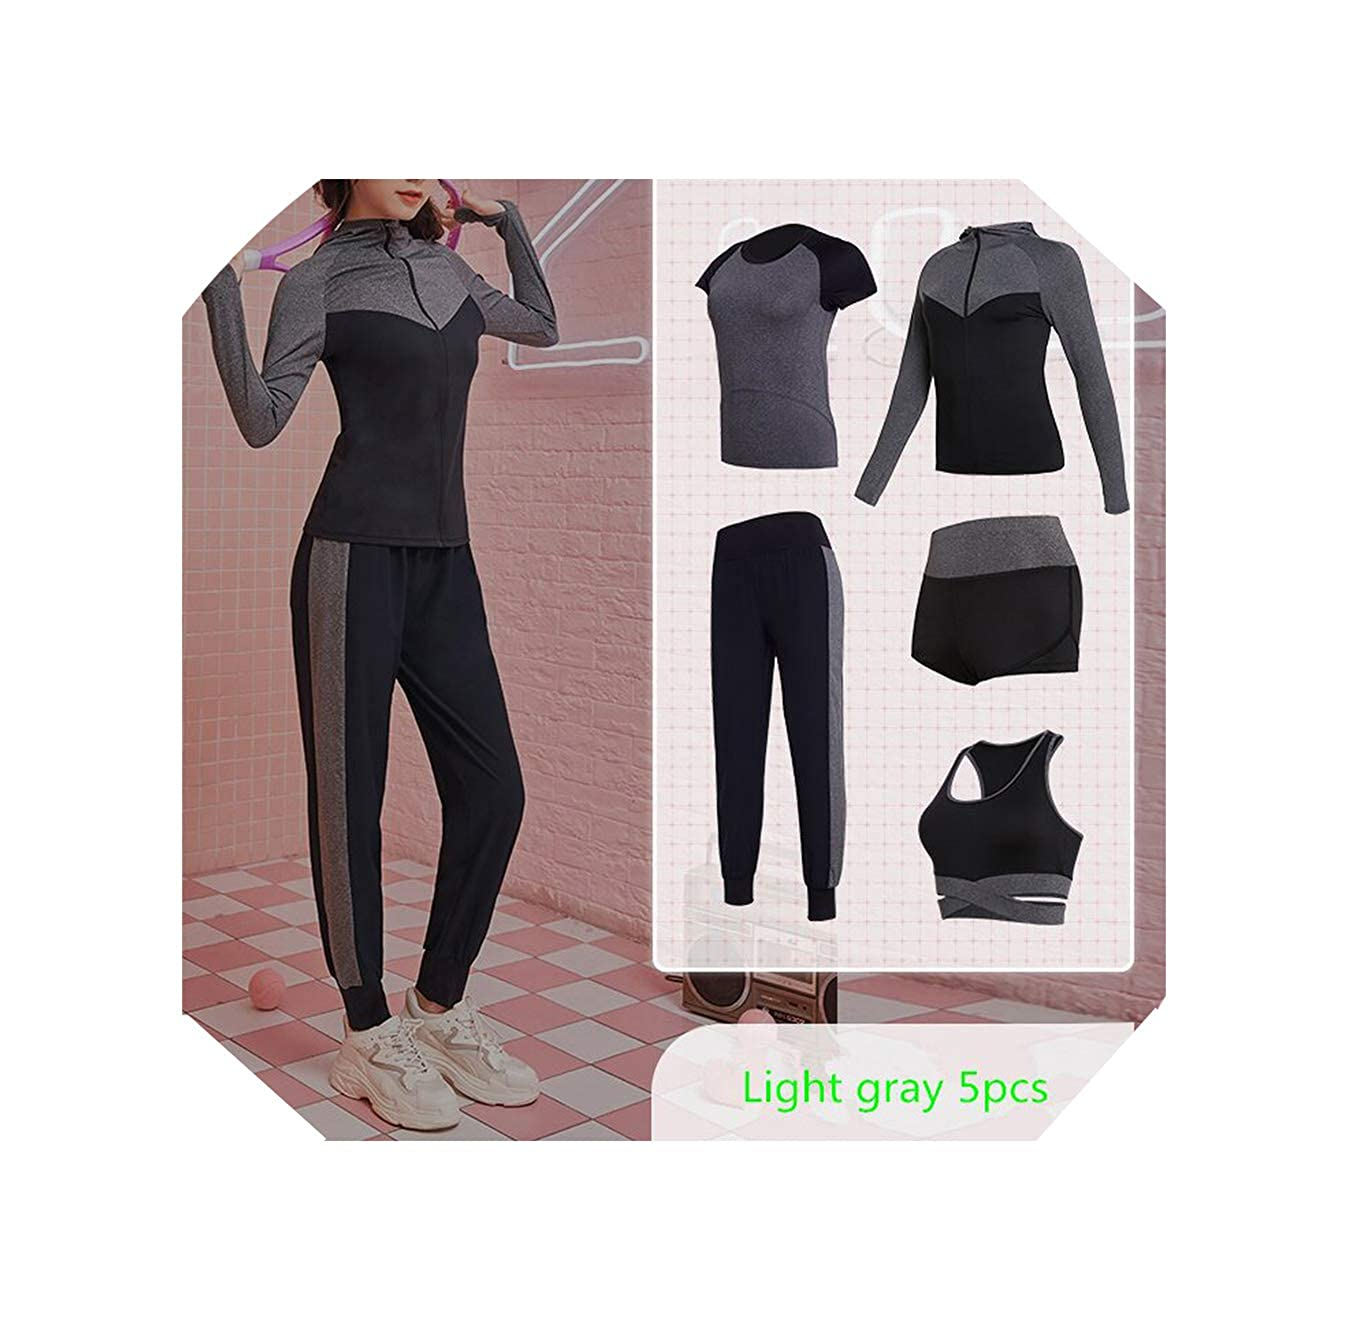 Bats 4375 WBeauty Women's Yoga Clothes Set Running Tights Sportswear Quick Dry